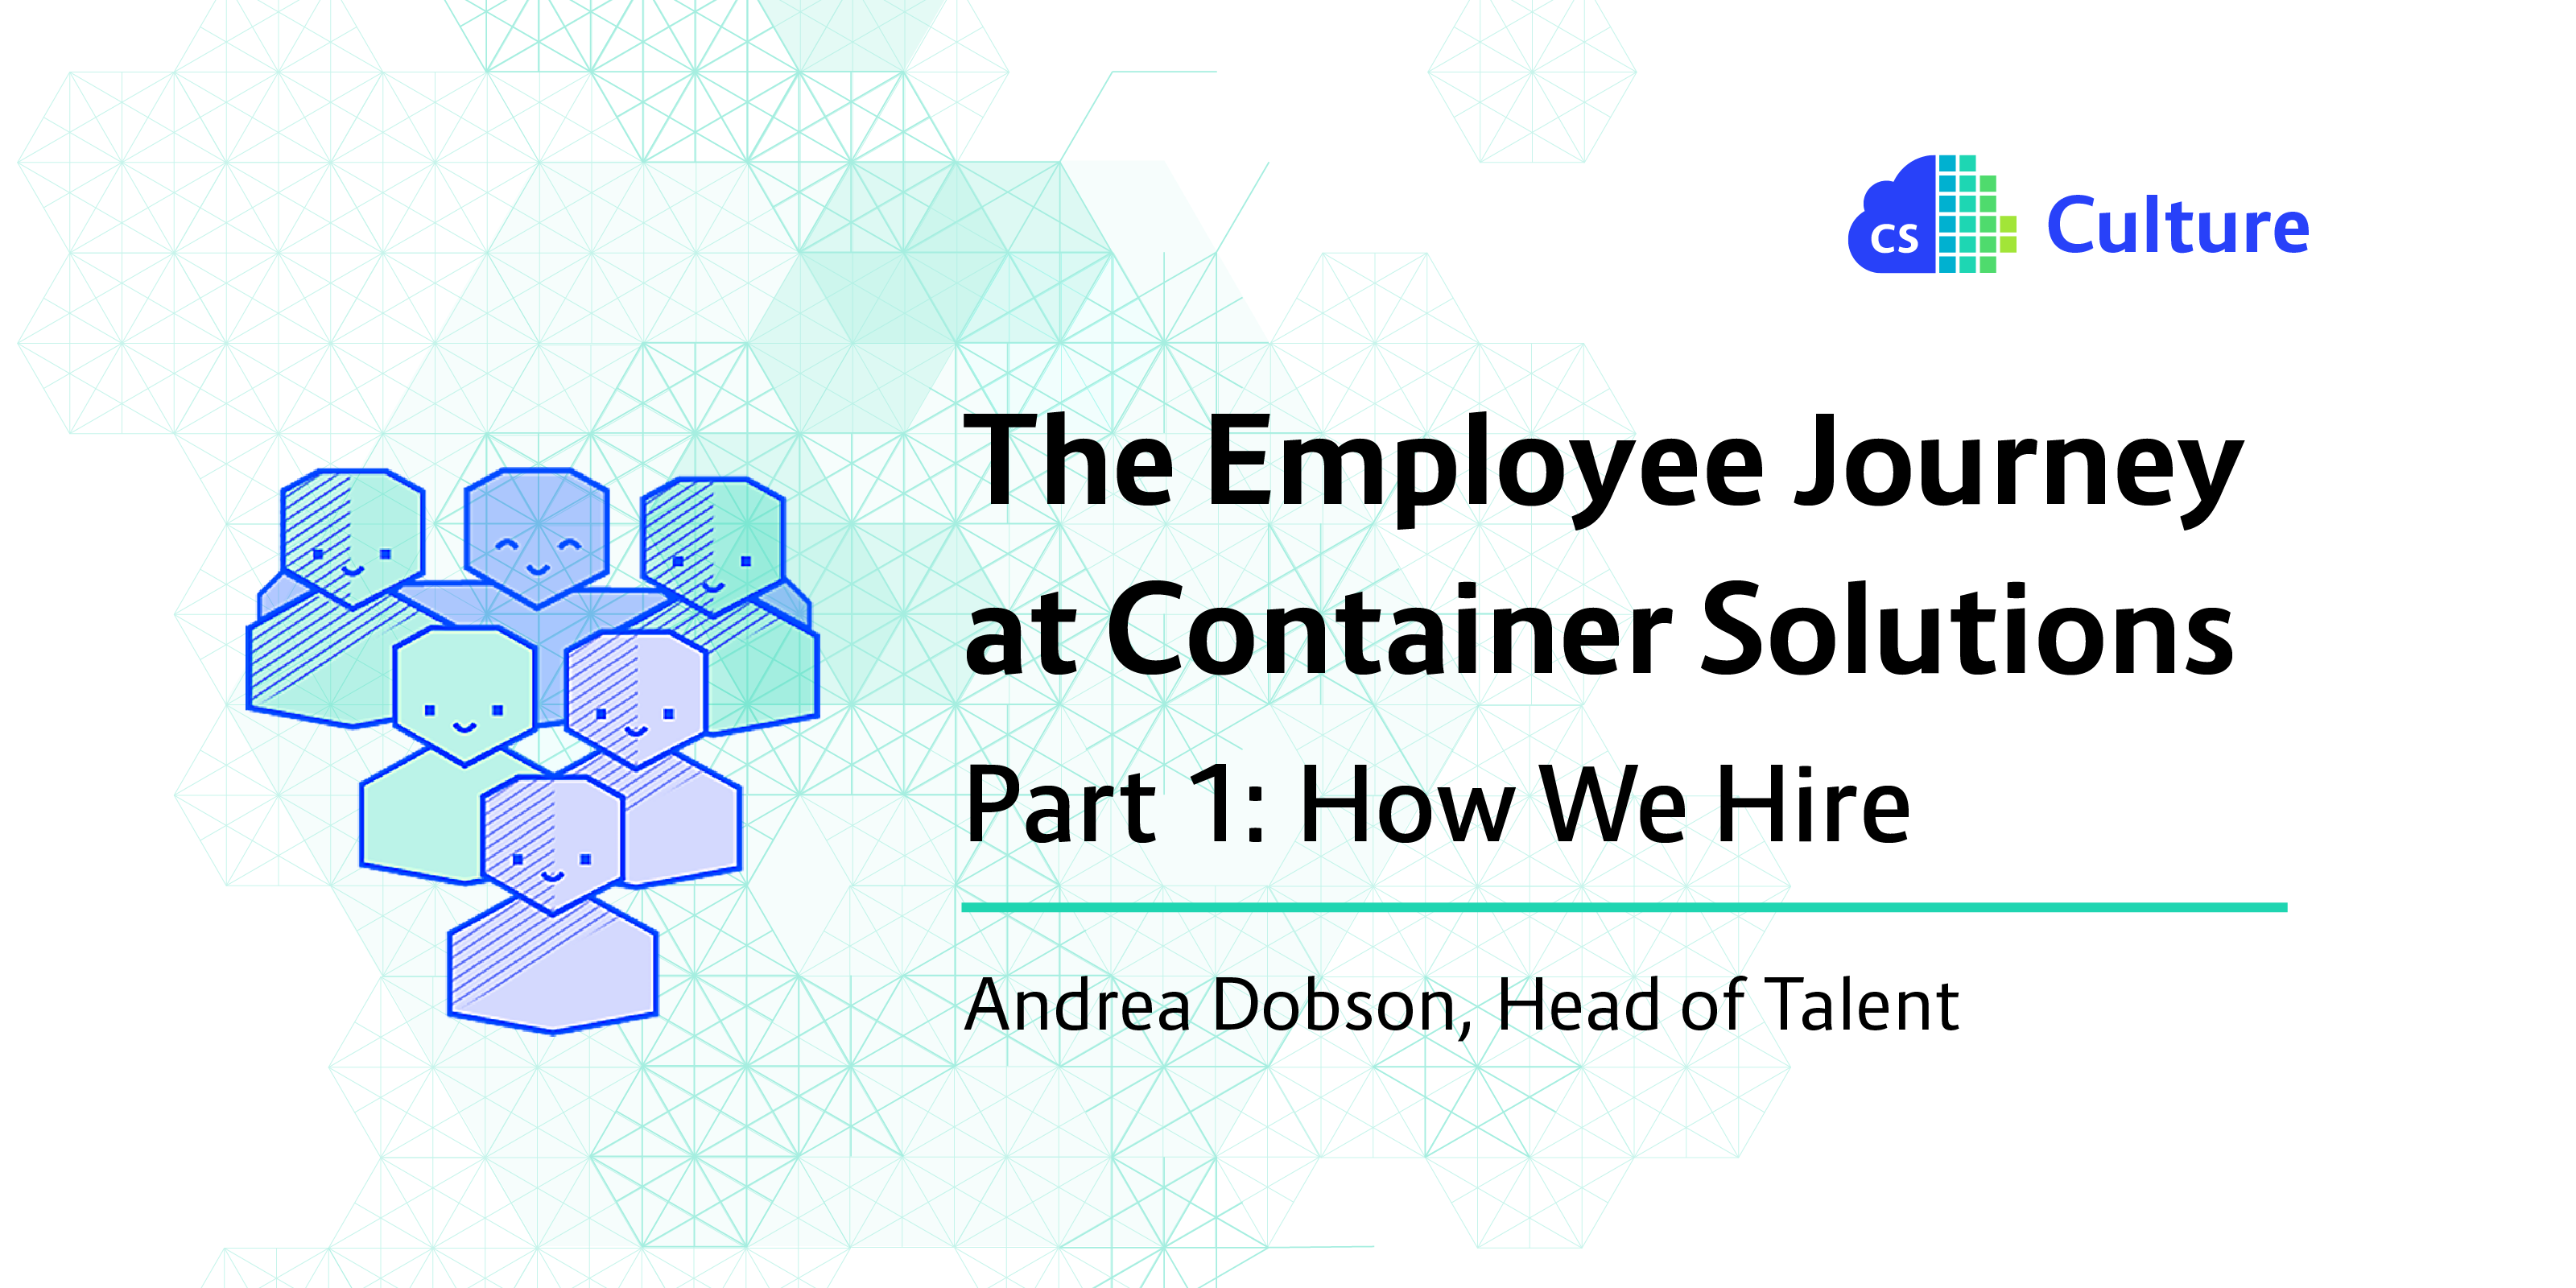 The employee journey at Container Solutions, part 1, How we hire